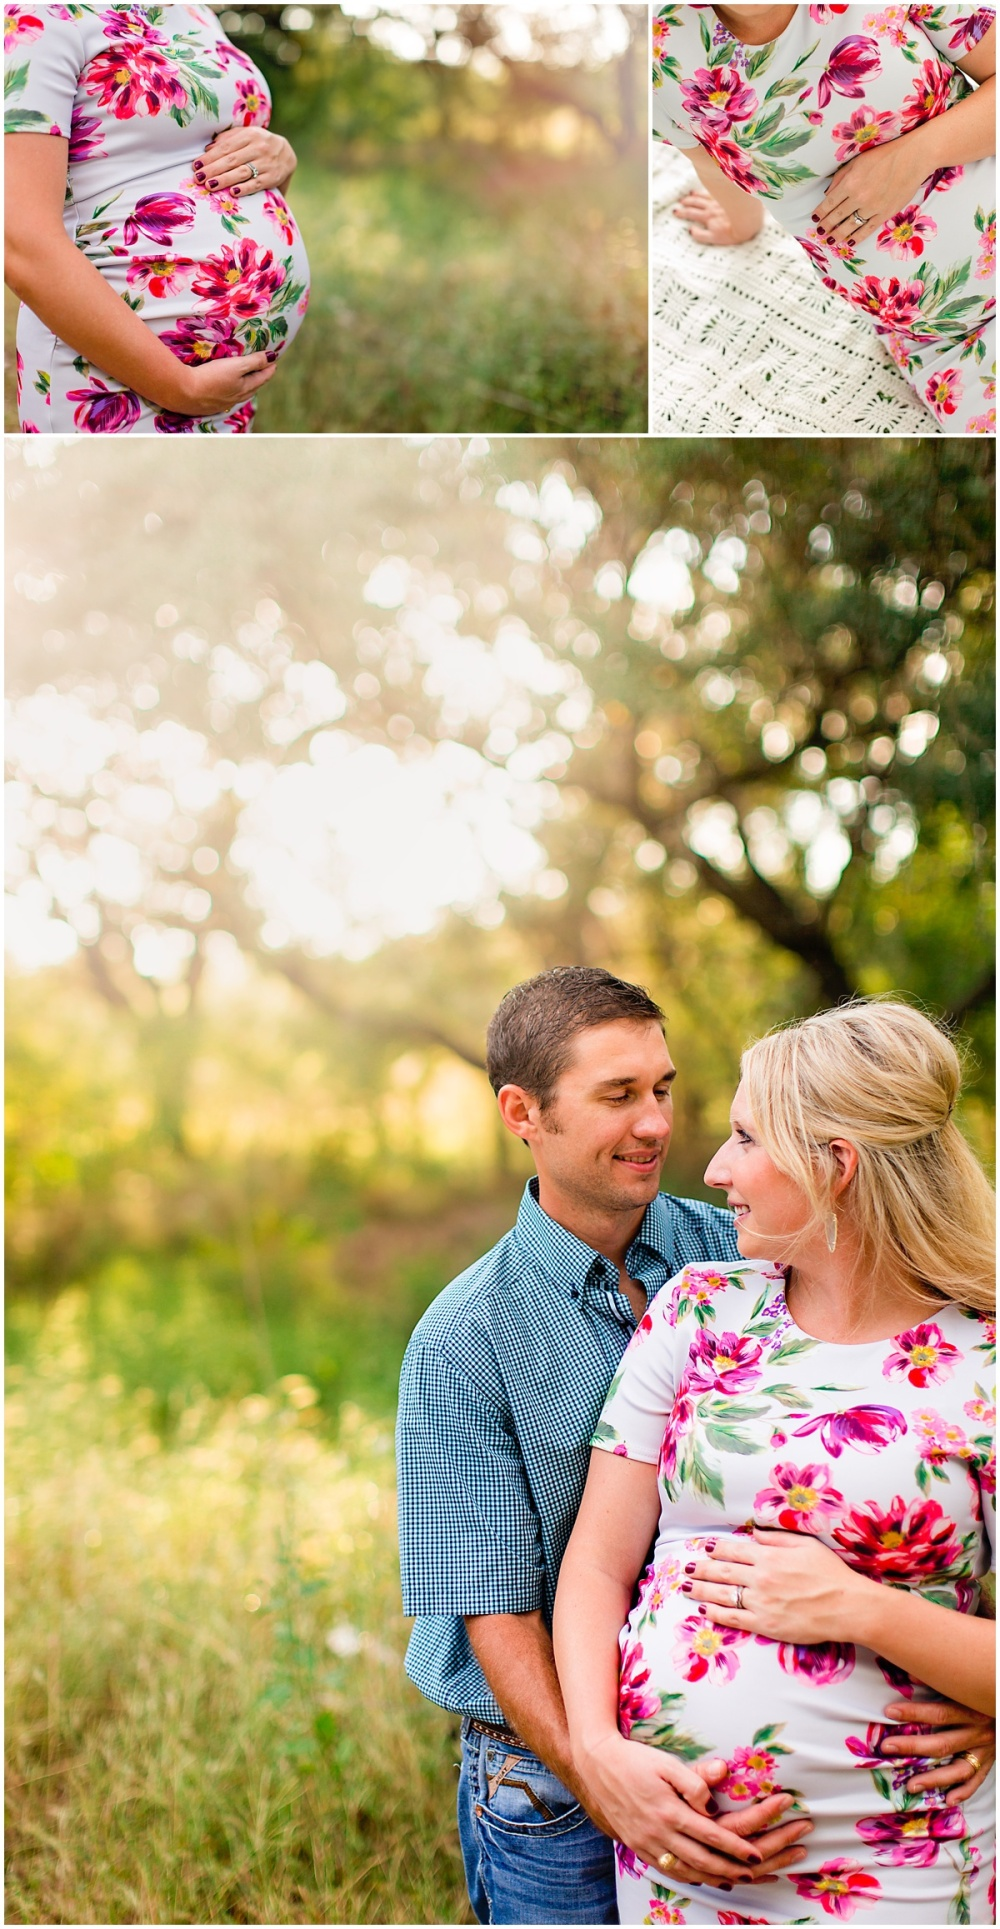 Family-Children-Maternity-Portraits-San-Antonio-Hill-Country-Texas-Carly-Barton-Photography_0010.jpg